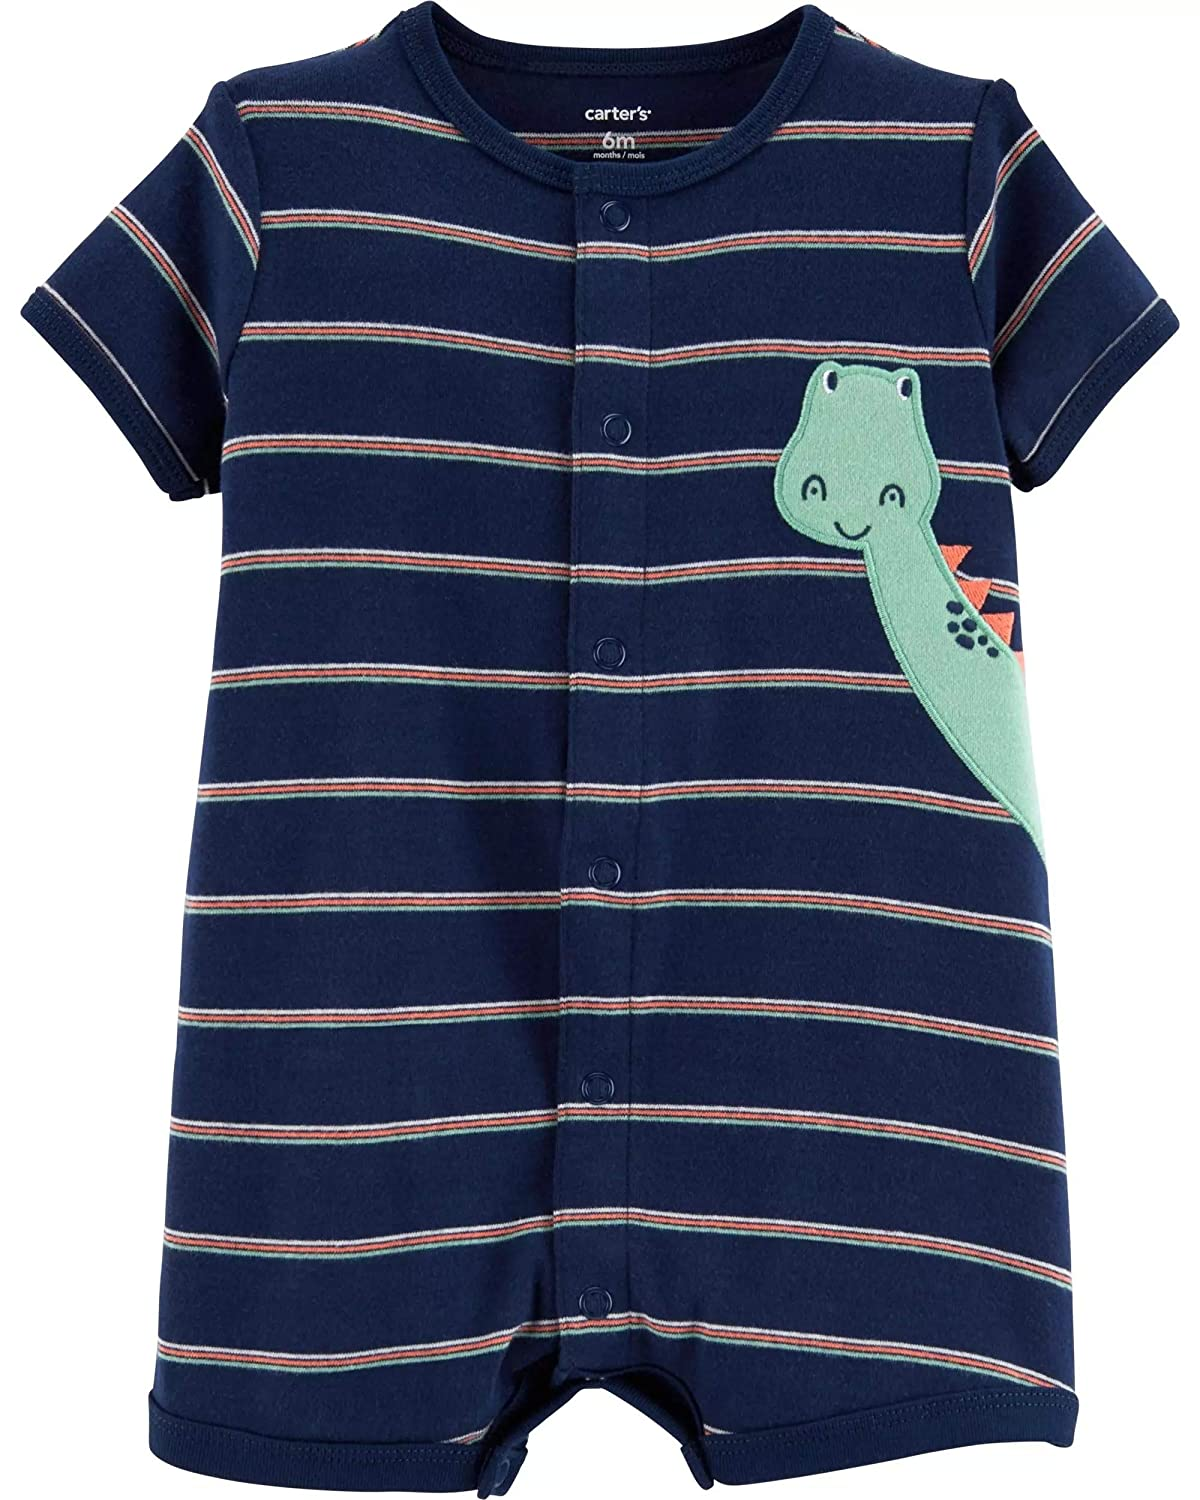 Carters Baby Boy Car Romper